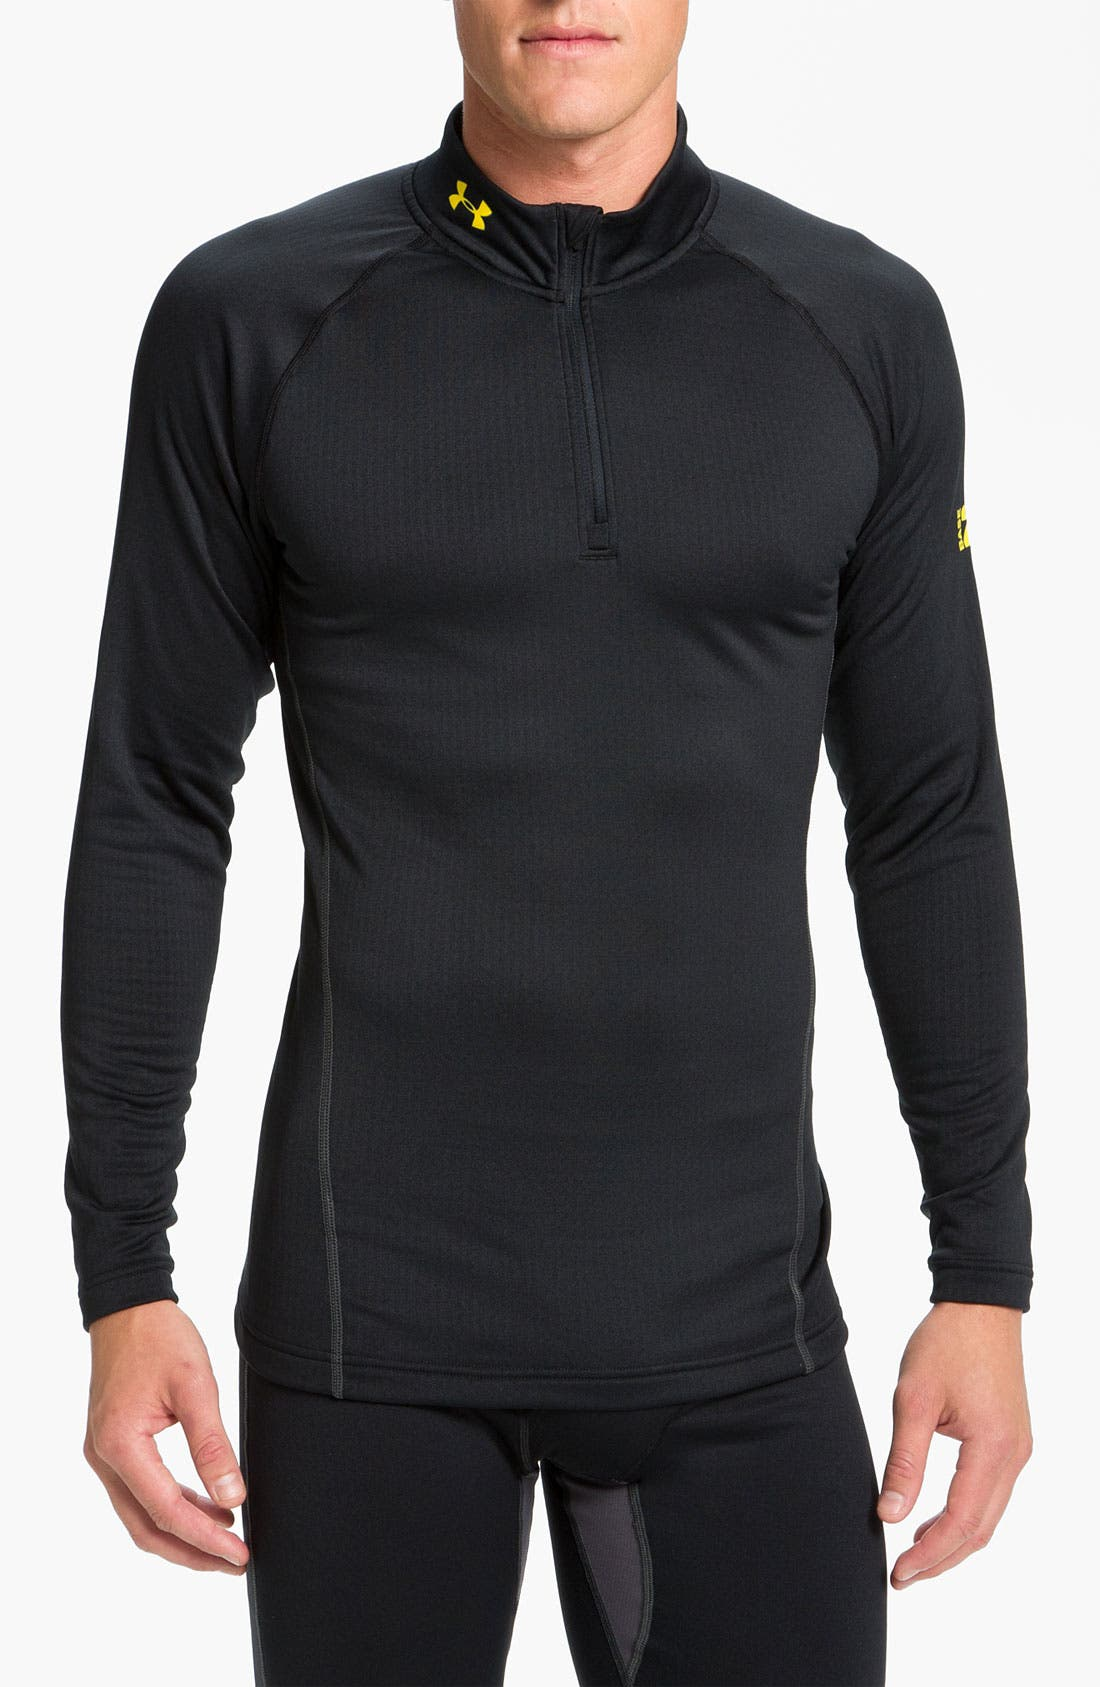 Main Image - Under Armour 'Base 2.0' Fitted Quarter Zip Pullover (Online Only)